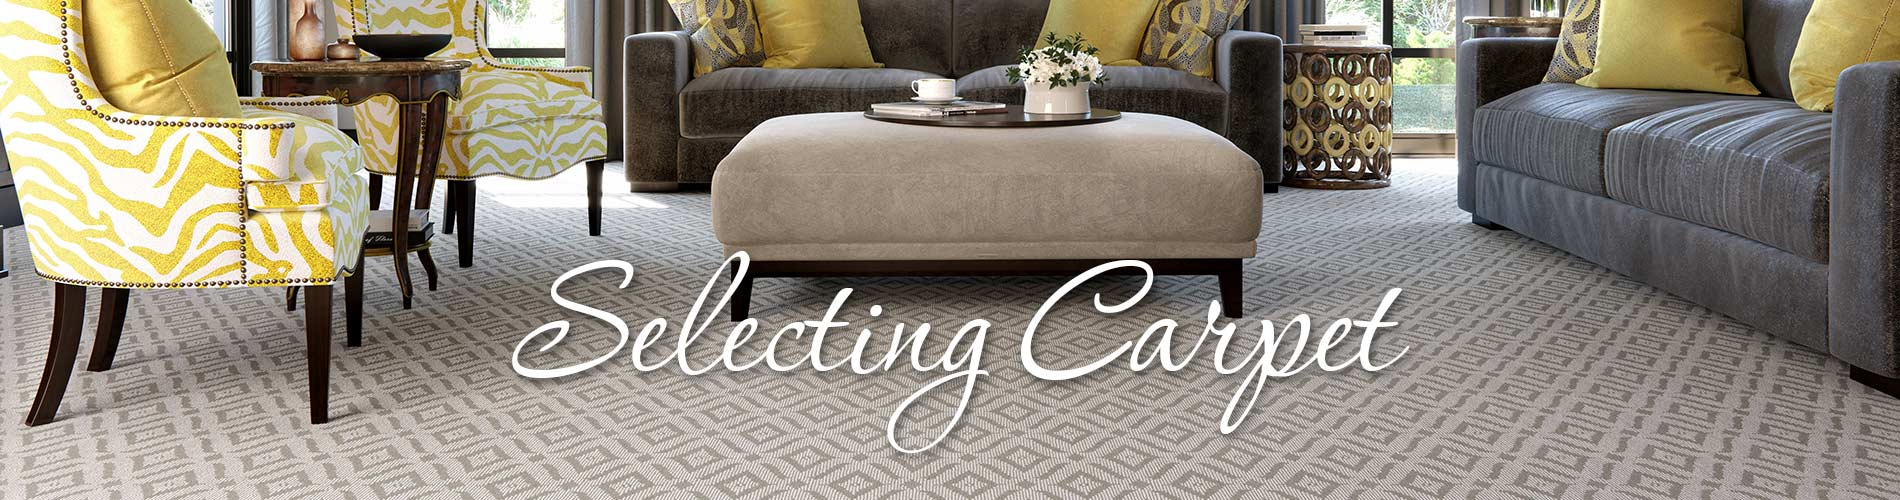 Selecting Carpet Floors To Go Rahway Nj West